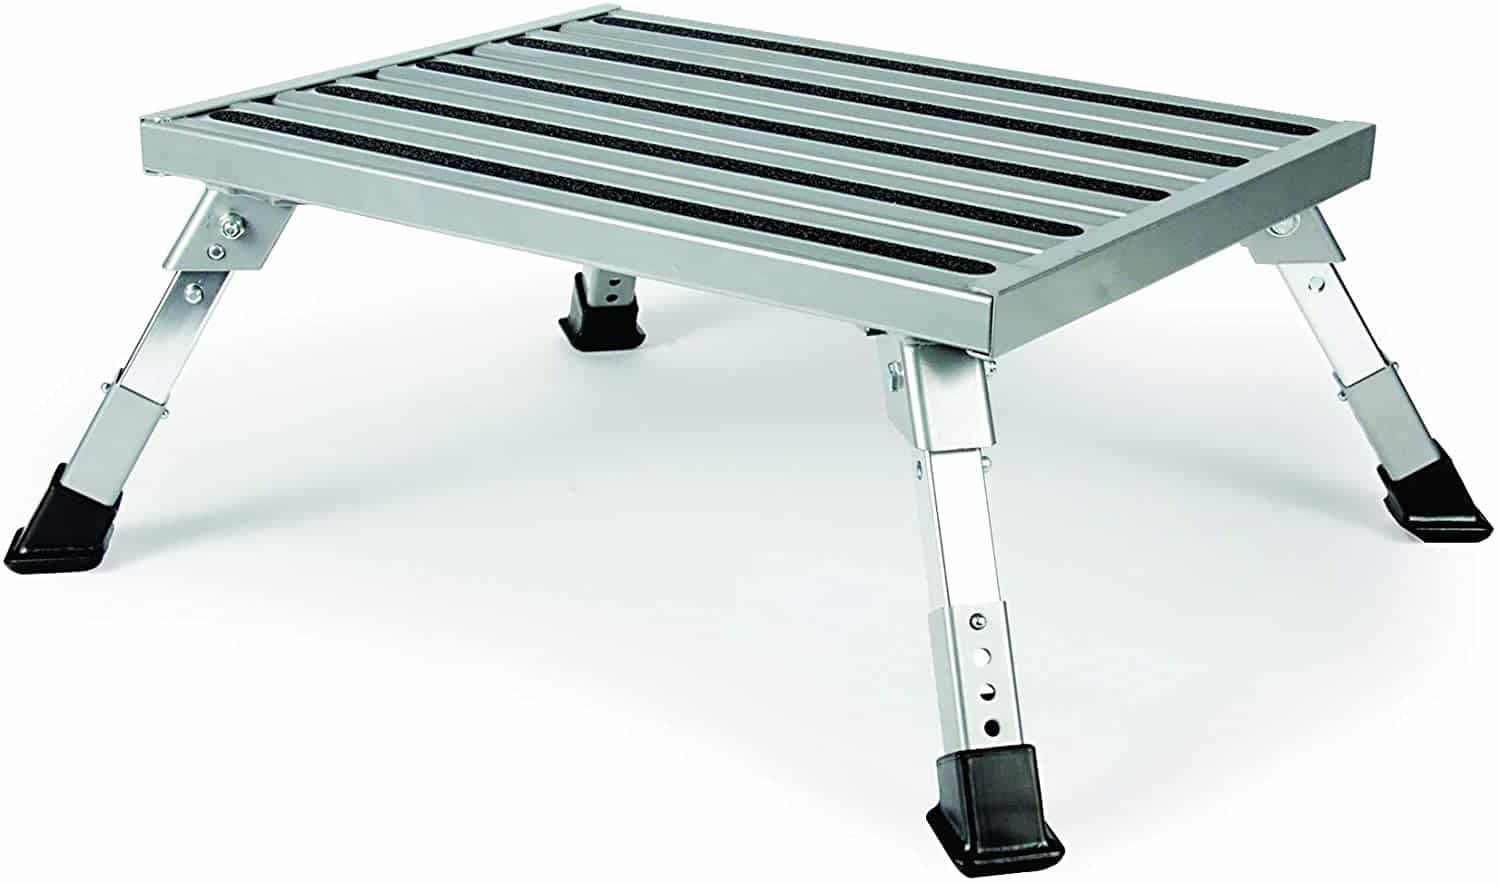 9. Camco Adjustable Aluminum Platform